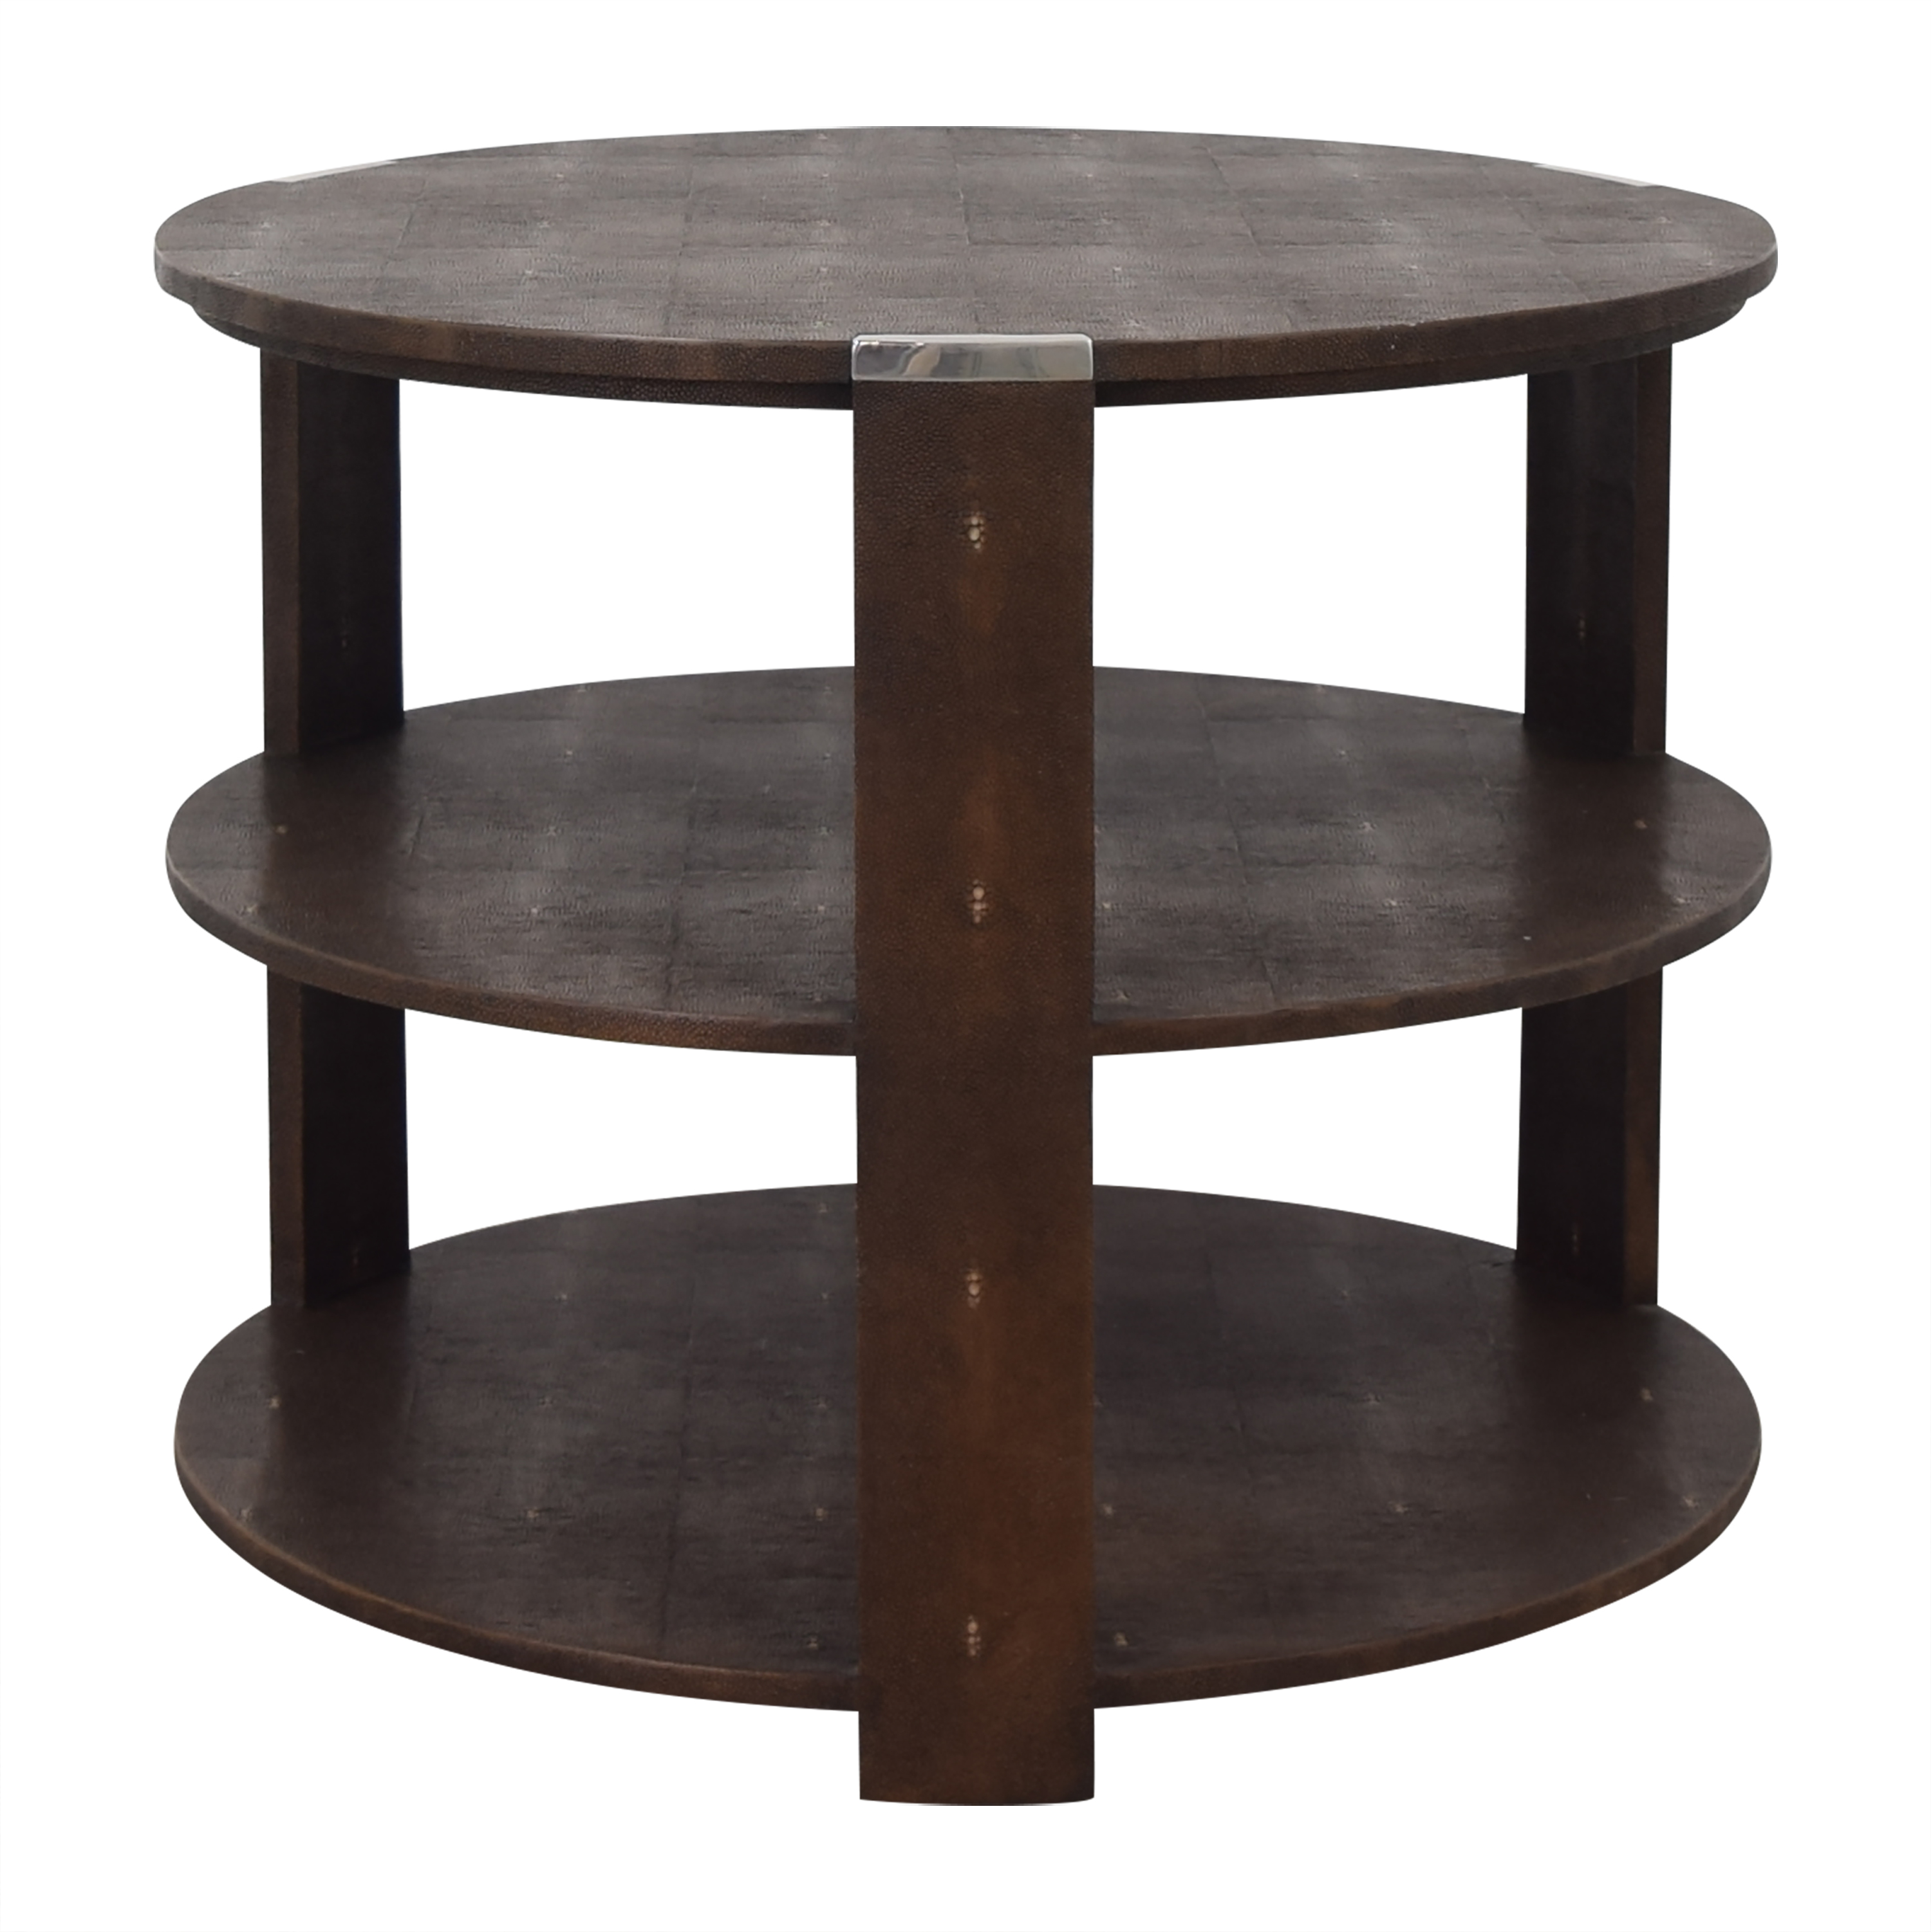 Julian Chichester Tribeca Hallway Table / Accent Tables